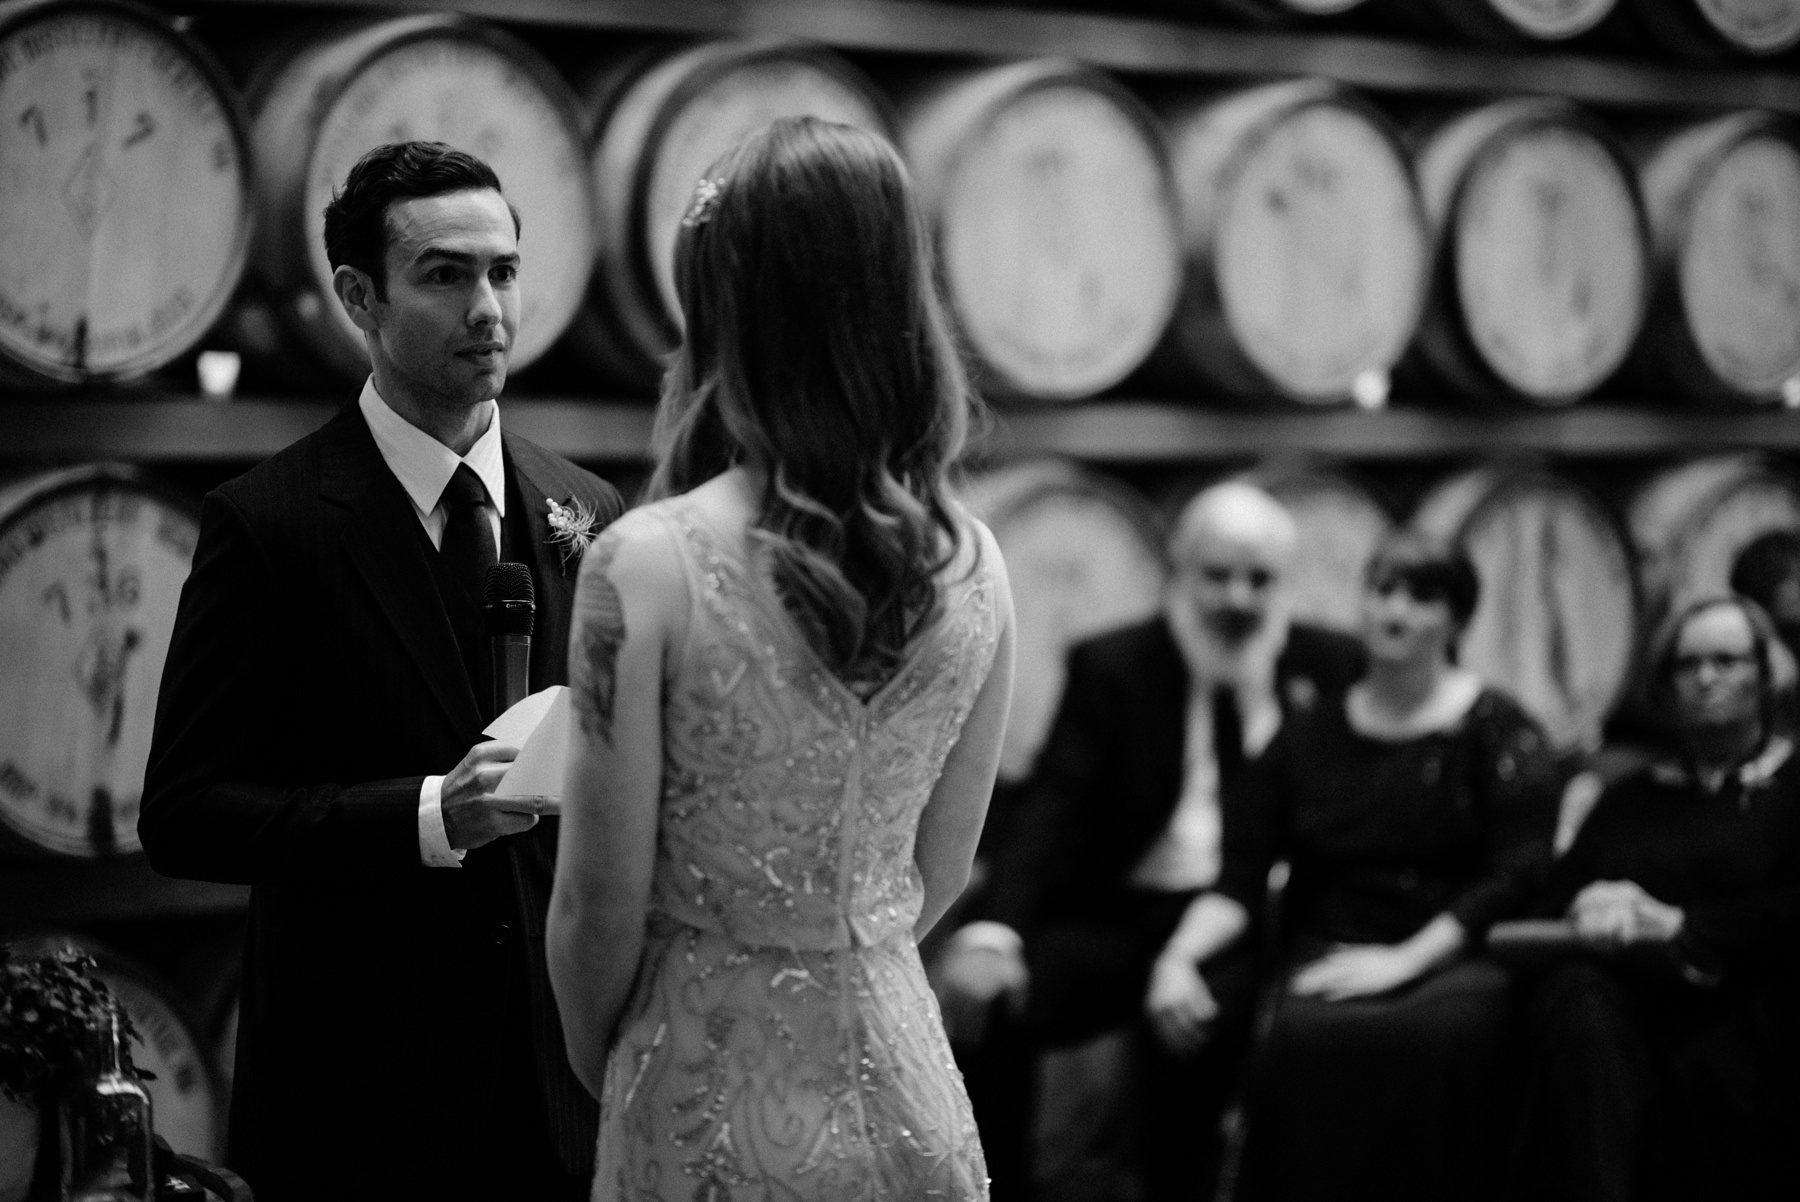 039-wedding-ceremony-among-whiskey-barrels-at-westland-distillery-in-seattle.jpg